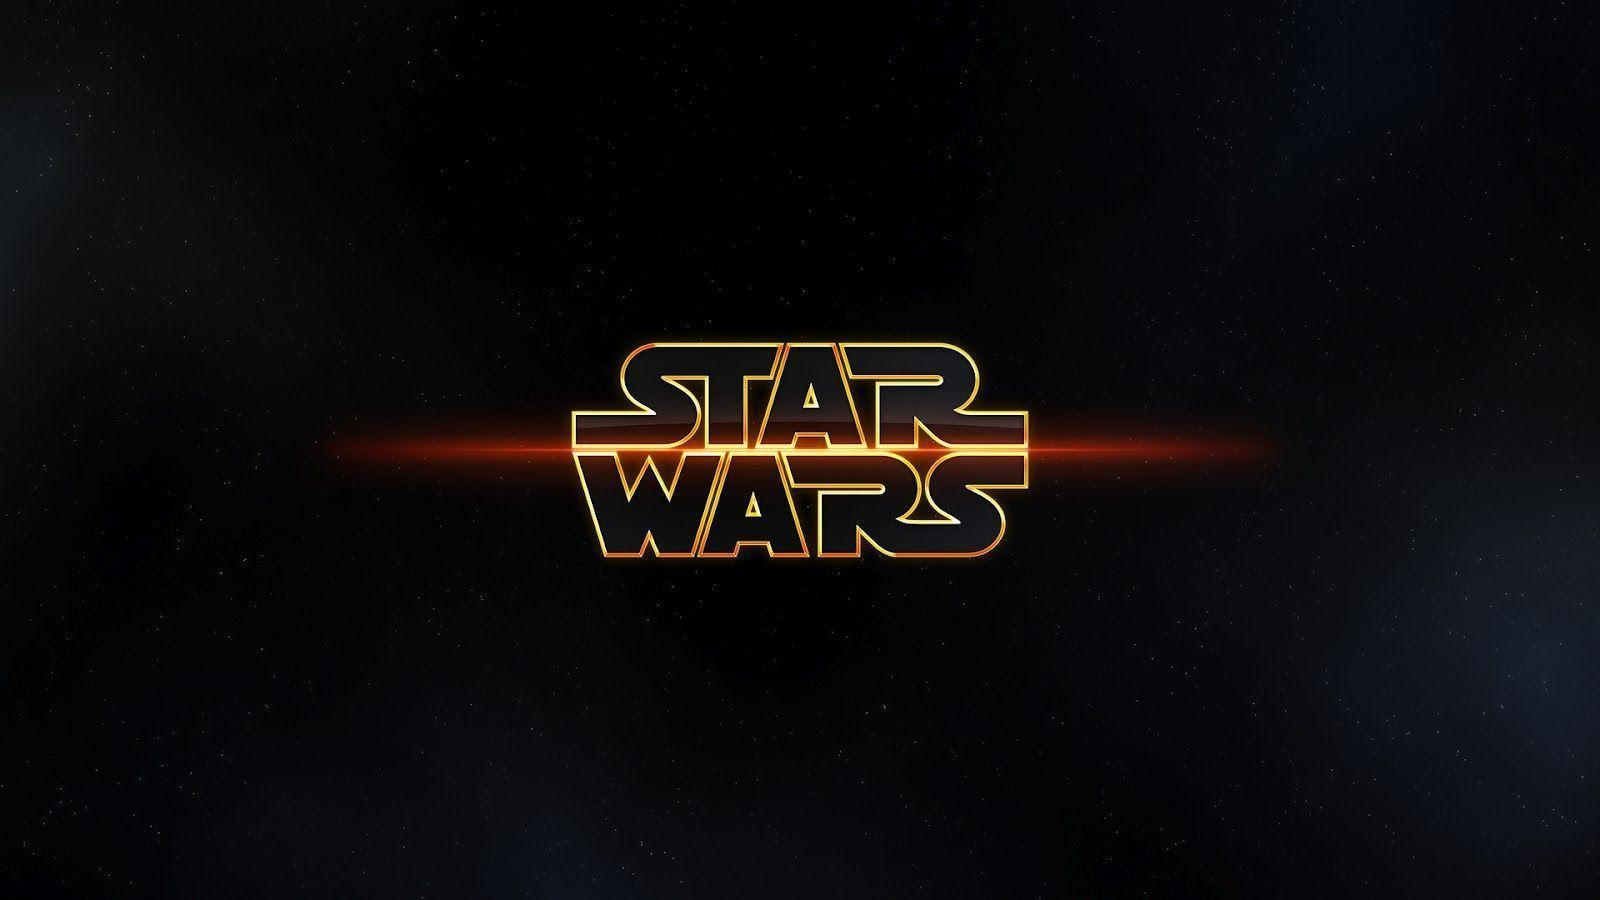 Wallpapers For > Minimalist Star Wars Wallpapers 1920x1080